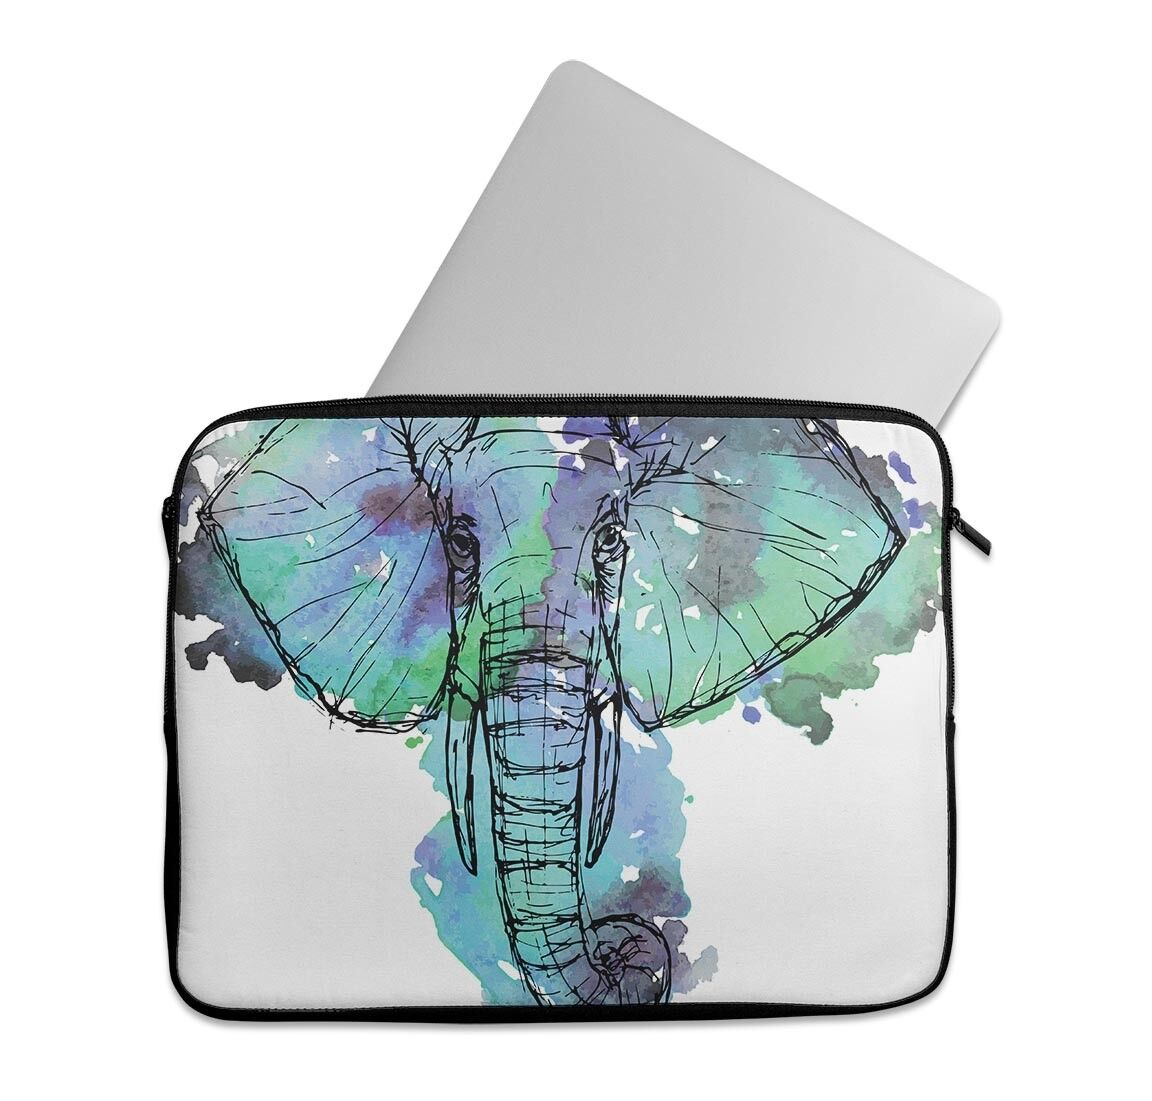 EmbraceCase Ink-Fuzed Neoprene Laptop Sleeve with African Sk